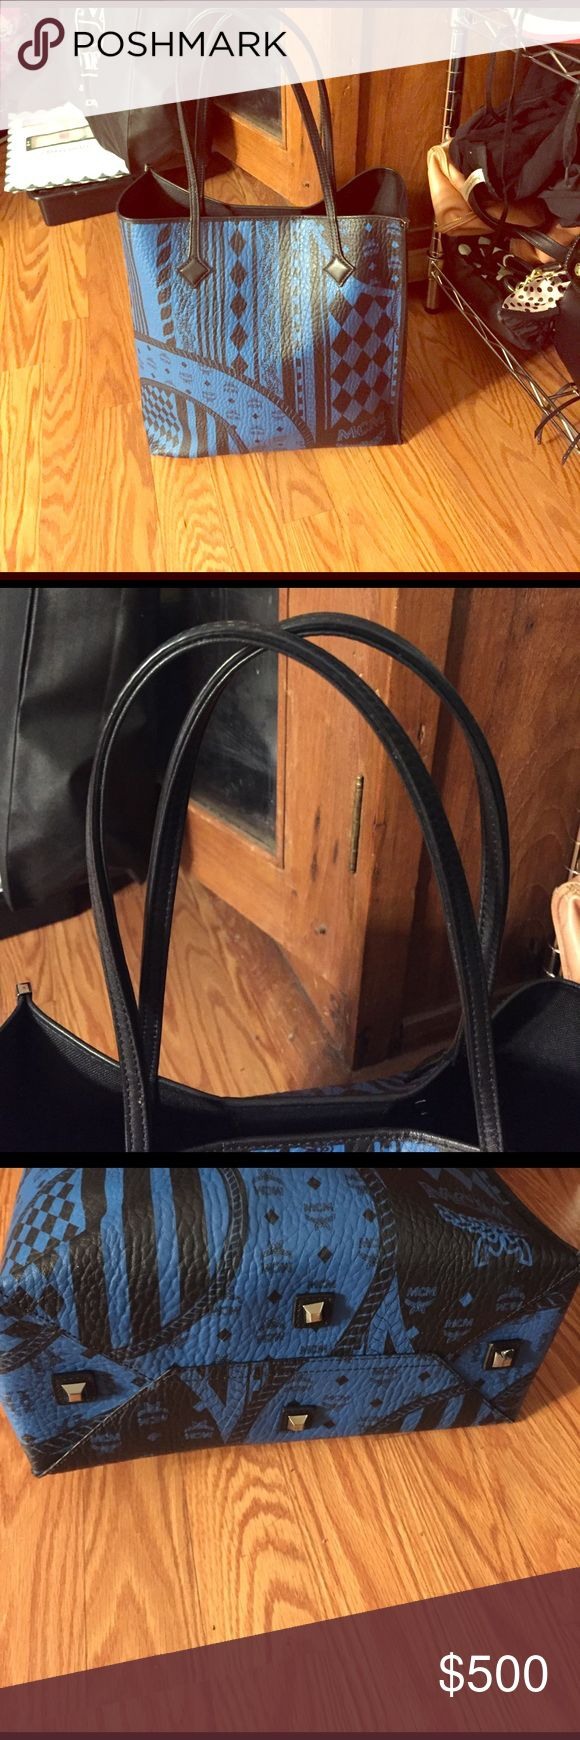 100% Authentic MCM tote bag It's a large blue MCM tote with MCM logo written all over it, no scratches or signs of wear. Basically brand new, Used only twice, holds a lot and also has a mini wallet that comes with it. Bought it at the MCM store in San Jose-please take a look and open to offers MCM Bags Totes